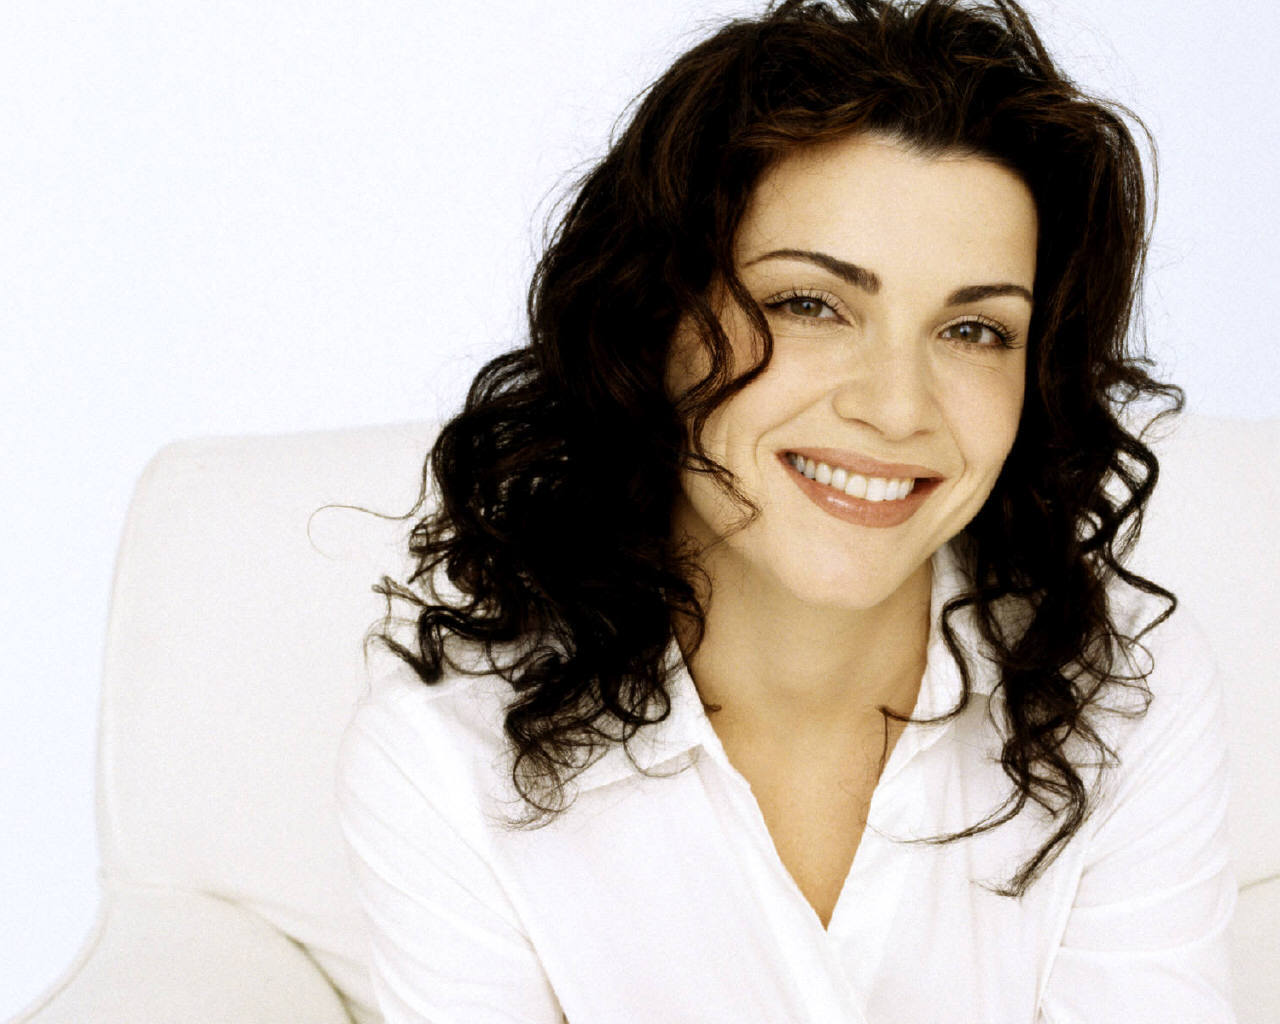 Julianna Margulies Wallpaper